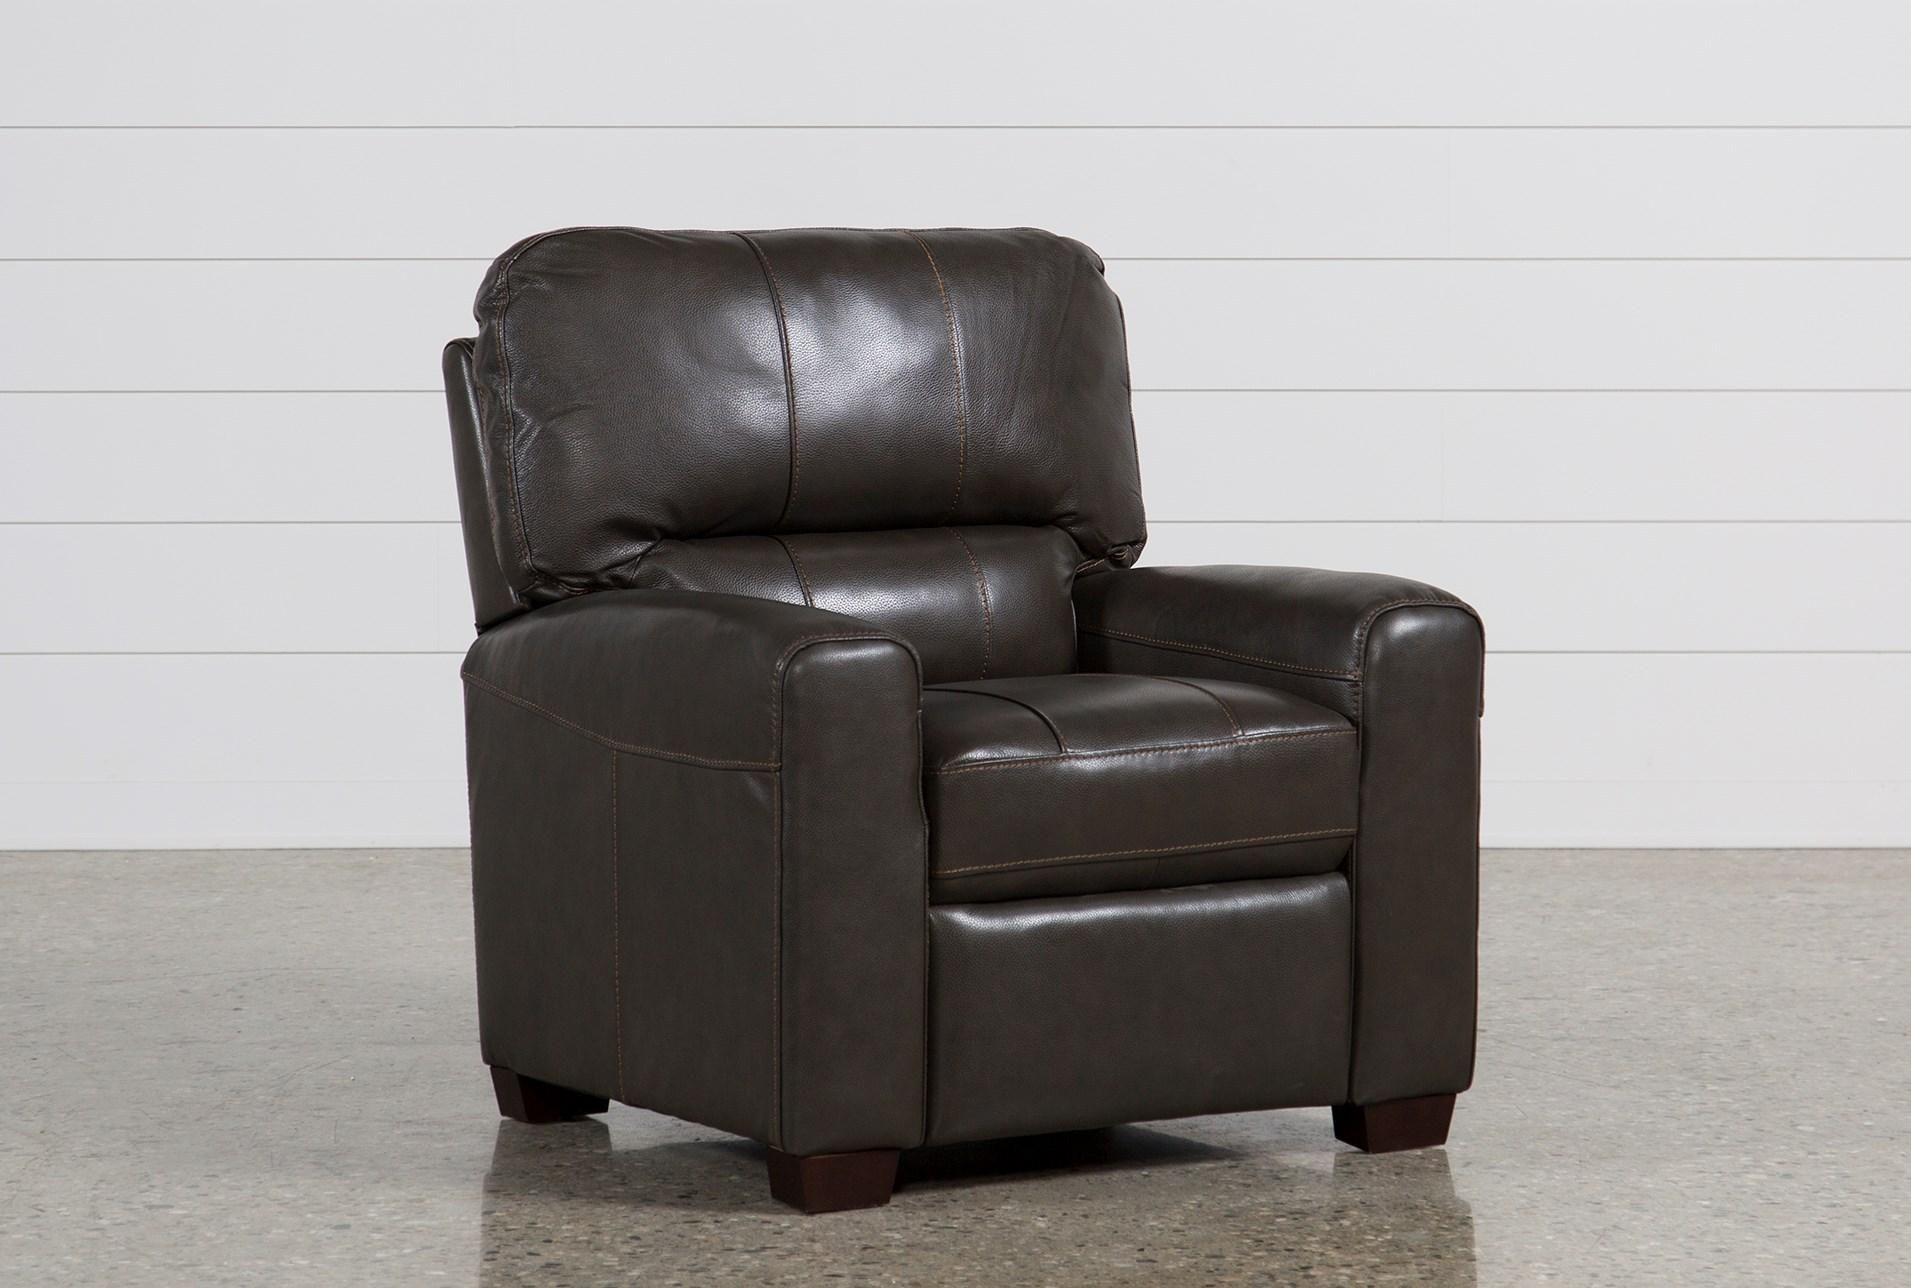 Delicieux Andrew Leather Recliner | Living Spaces Leather Recliner, Home And Living,  Recliners, Living